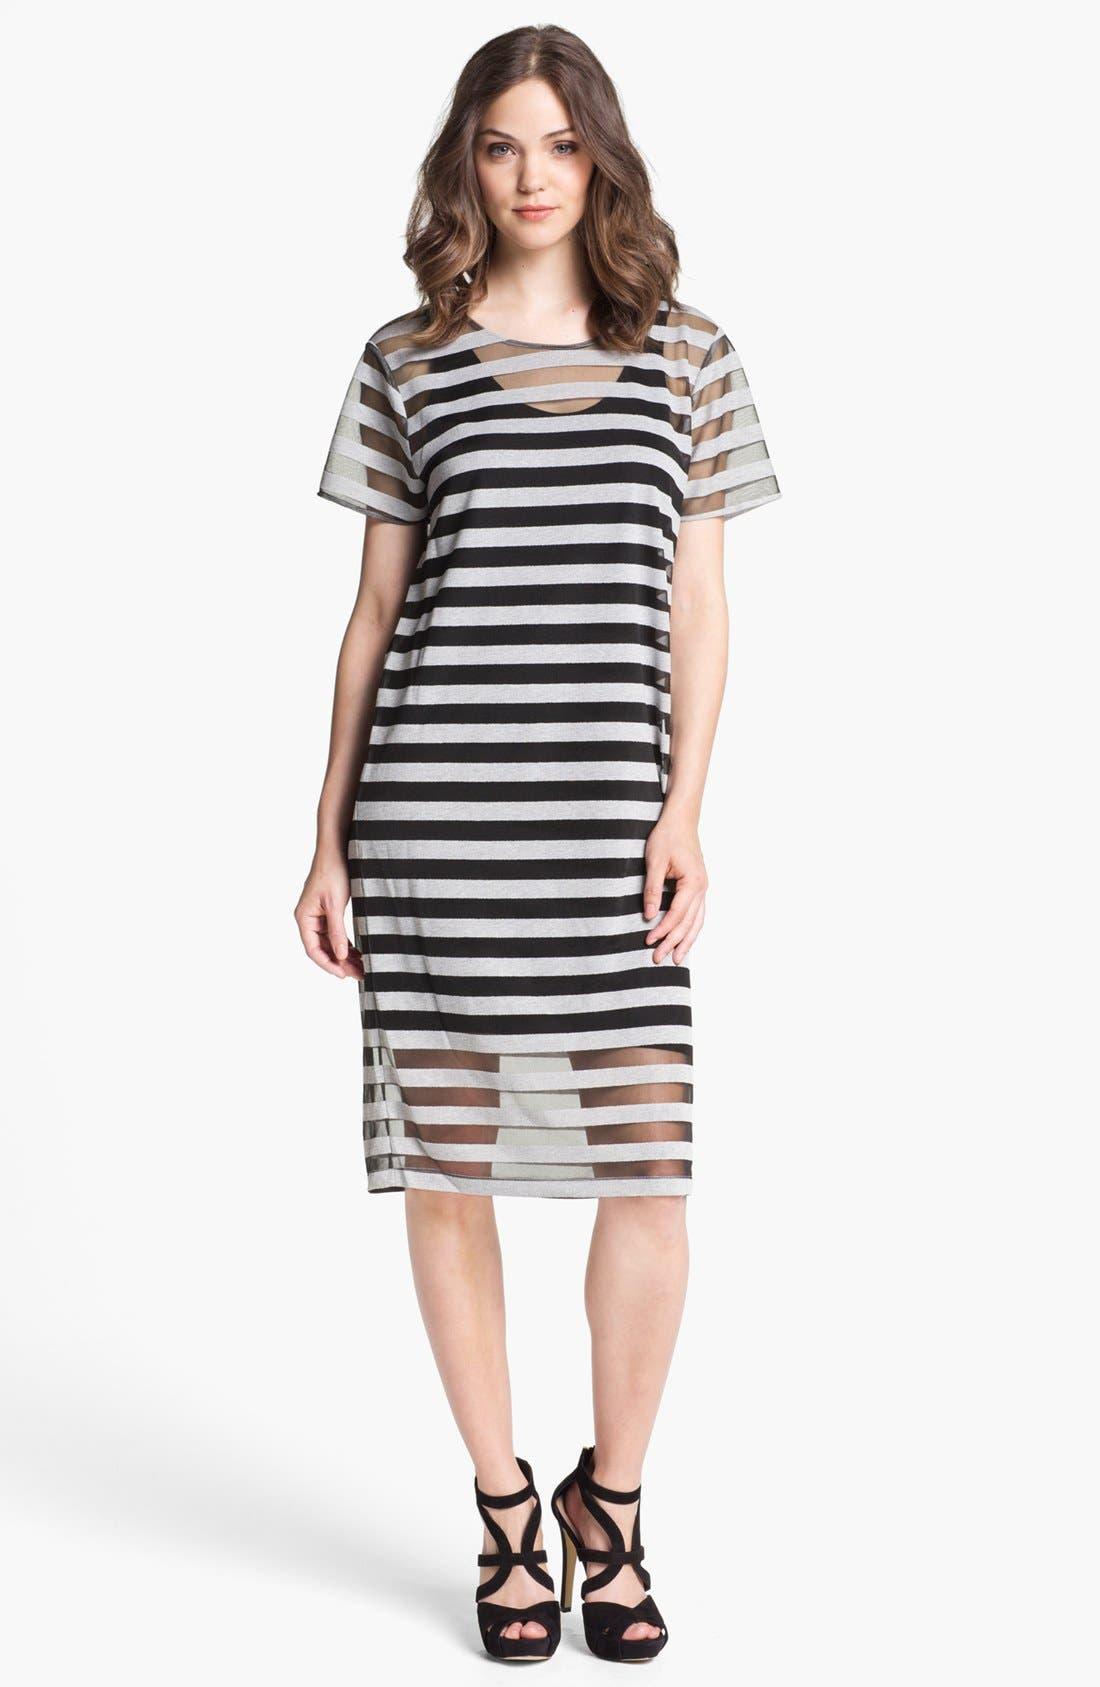 Main Image - Kenneth Cole New York 'Avery' Dress